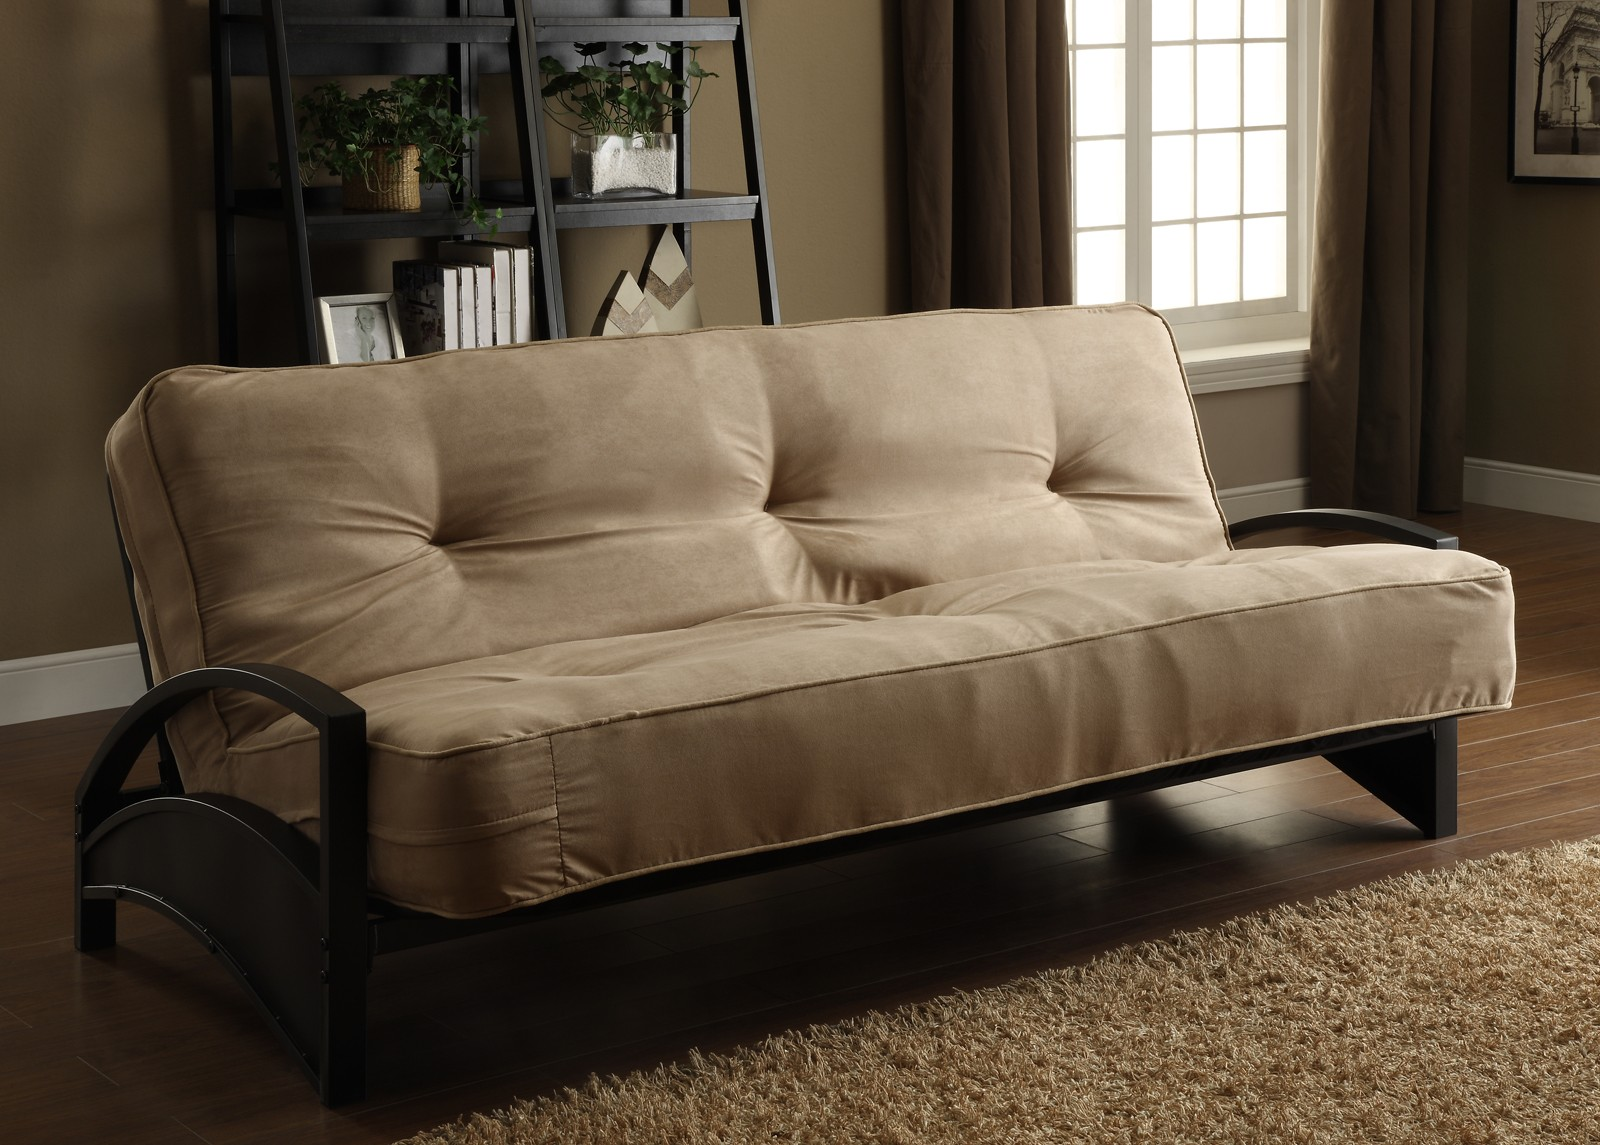 size product queen futons shipping today sofa hardwood futon monterey somette garden overstock home suede bed free